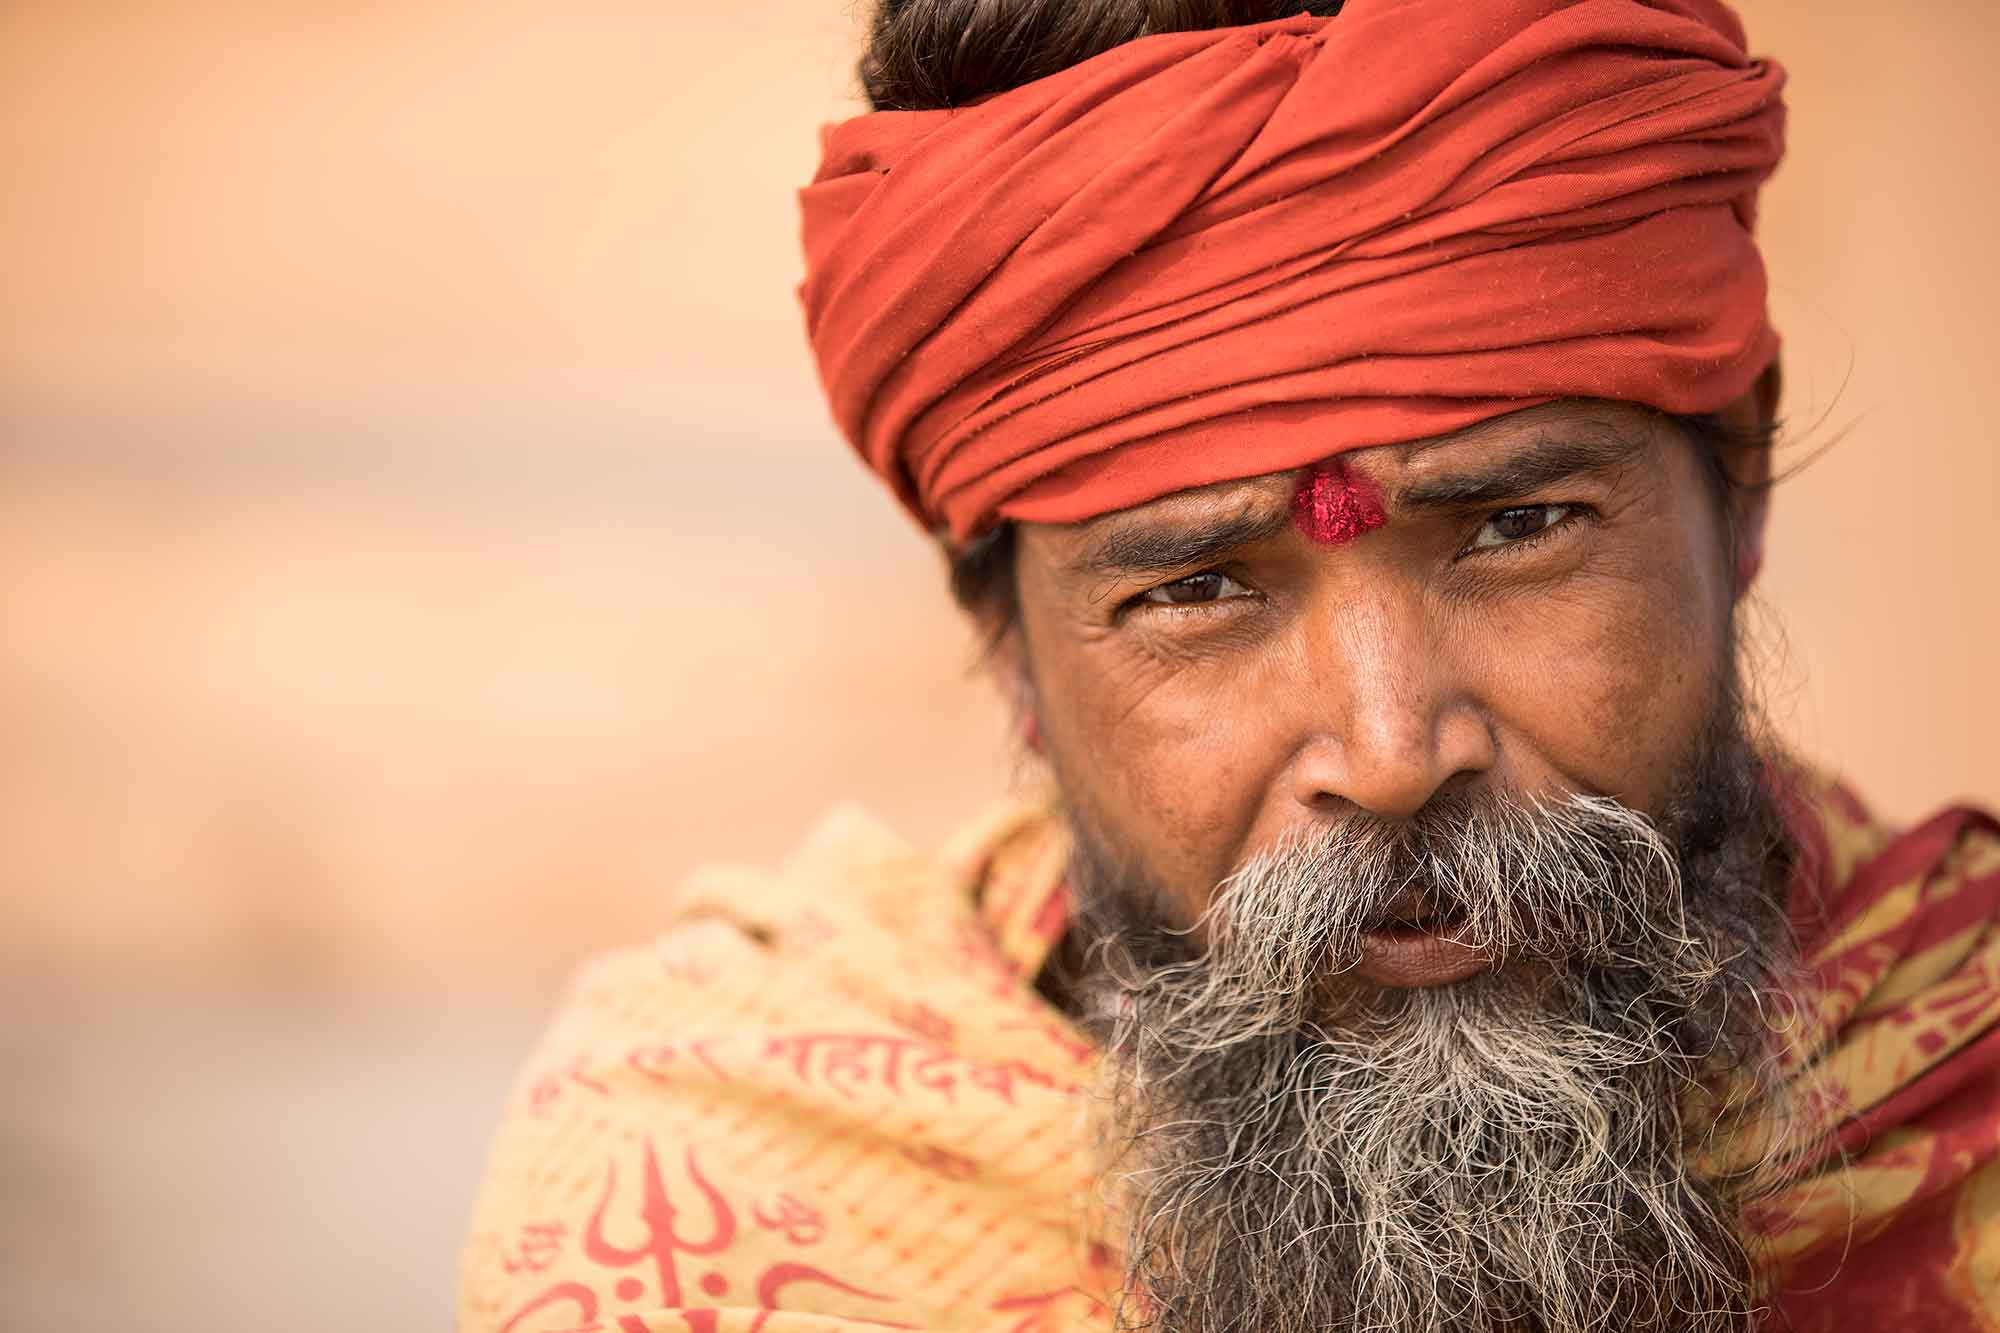 sadhu-portrait-varanasi-india-1